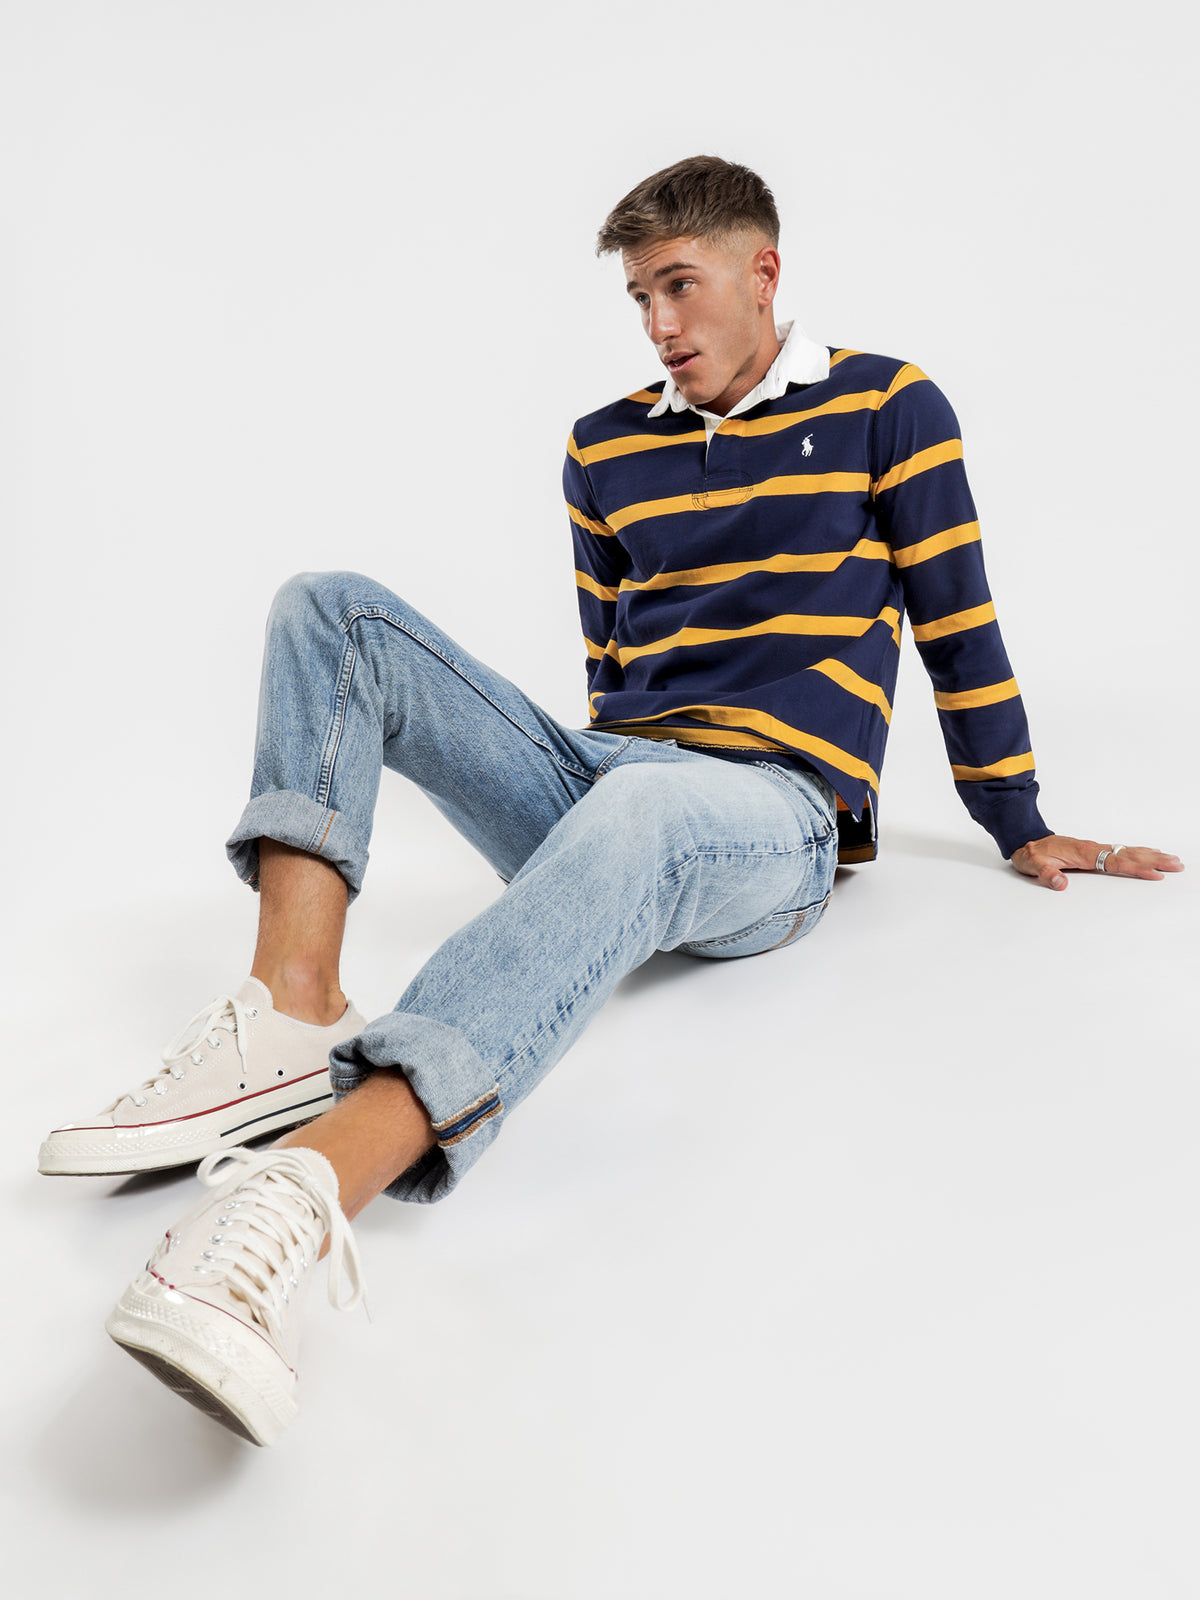 Narrow Stripe Rugby Shirt in Newport Navy & Gold Bugle Stripe